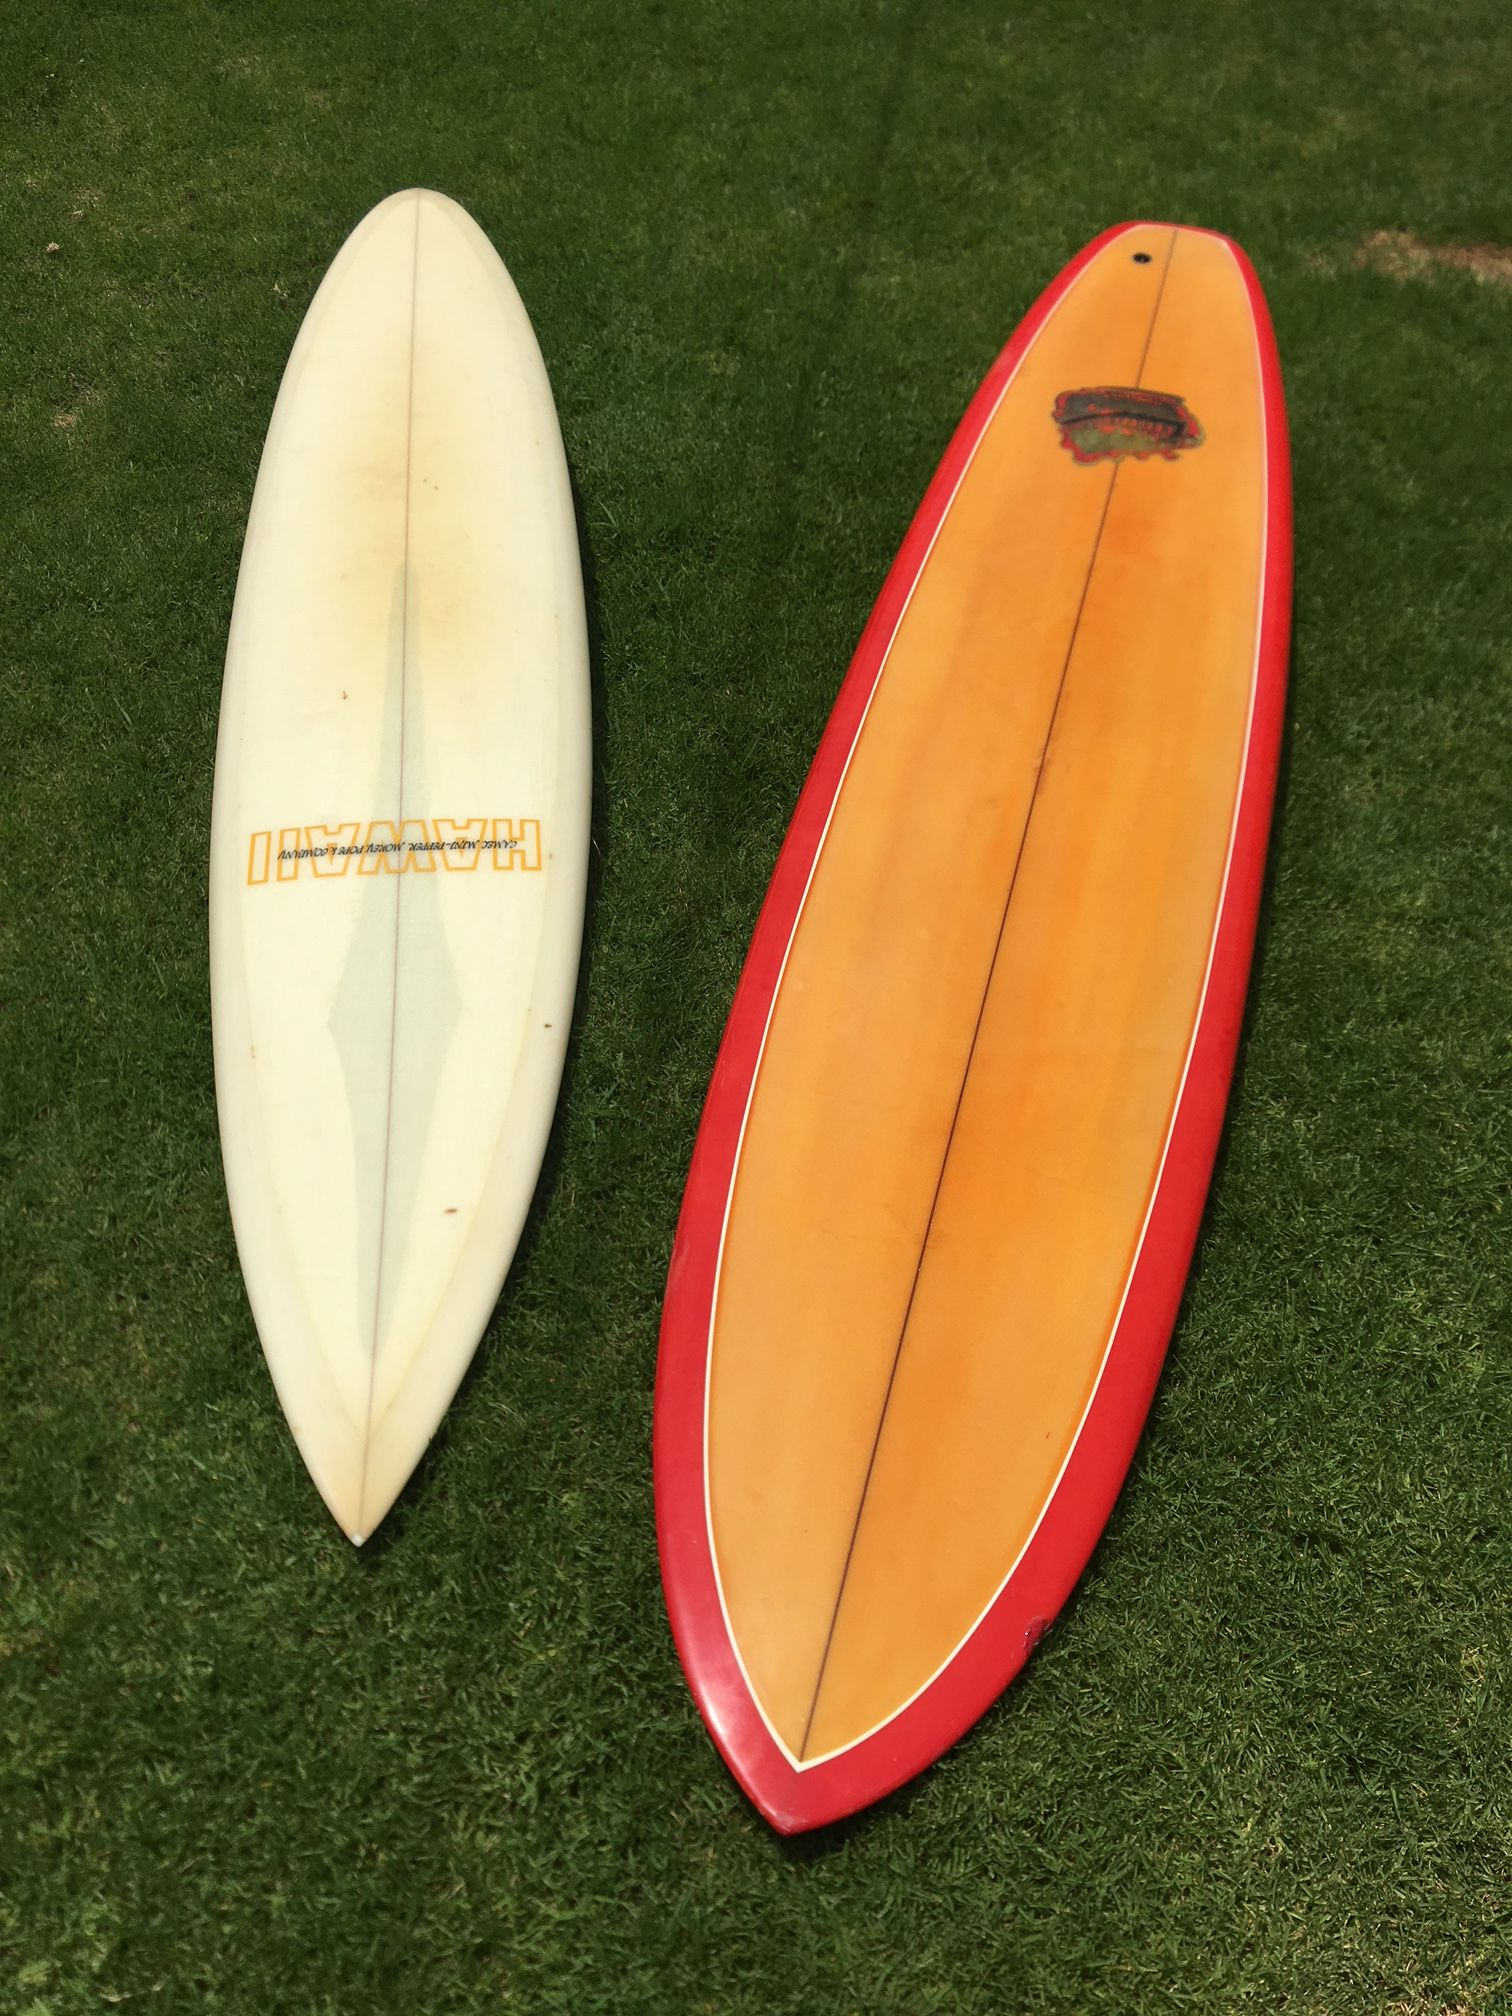 2 Vintage Surfboards From The Late 1960s Surfboards Hawaii 7 8